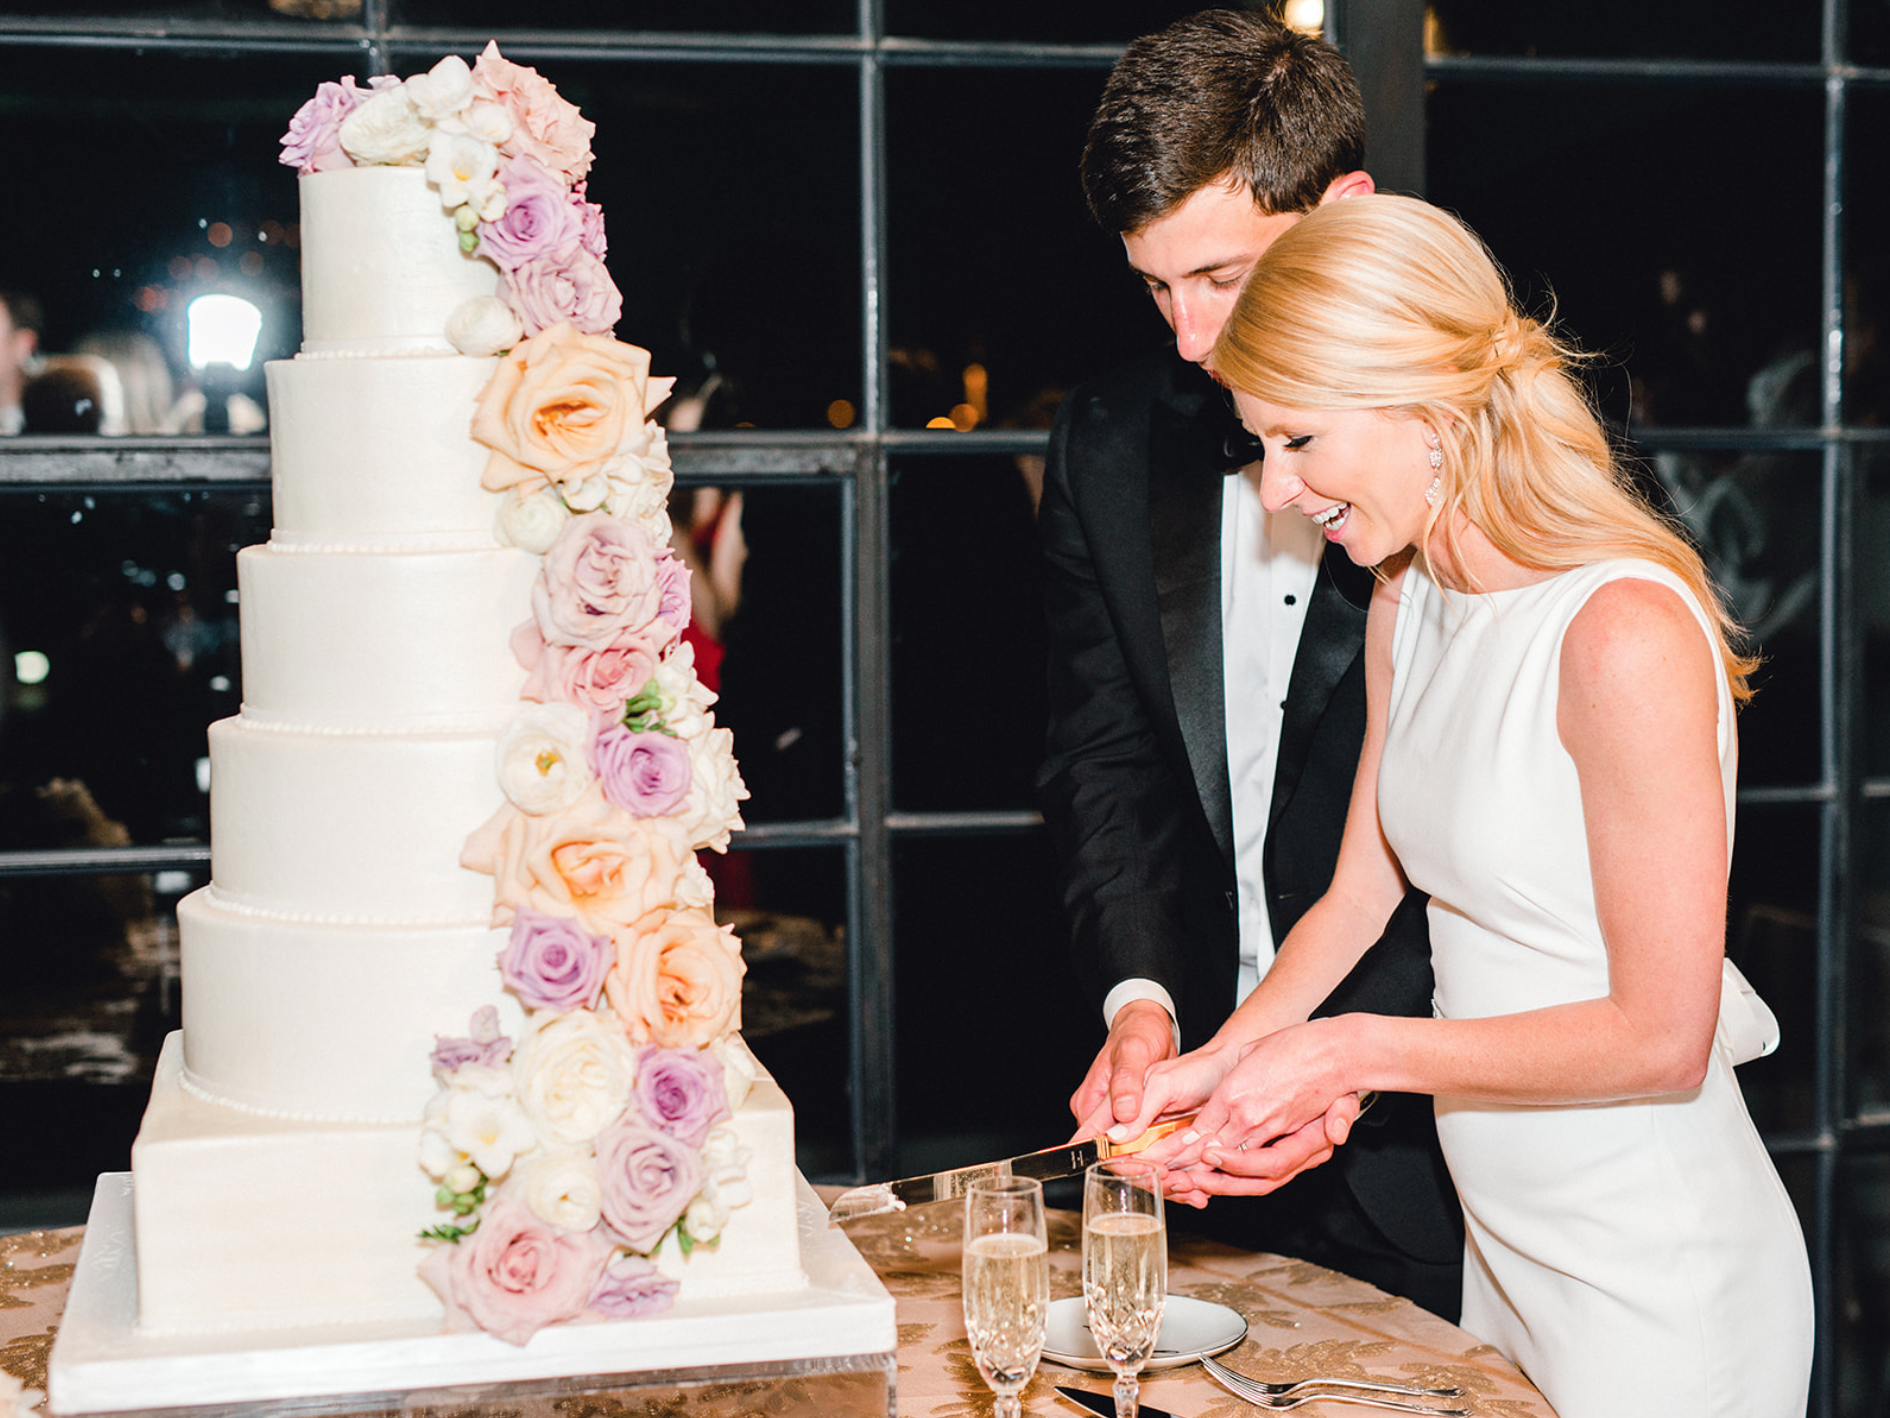 Cake_Cutting_Bride_Groom_Houston_Astorian.png